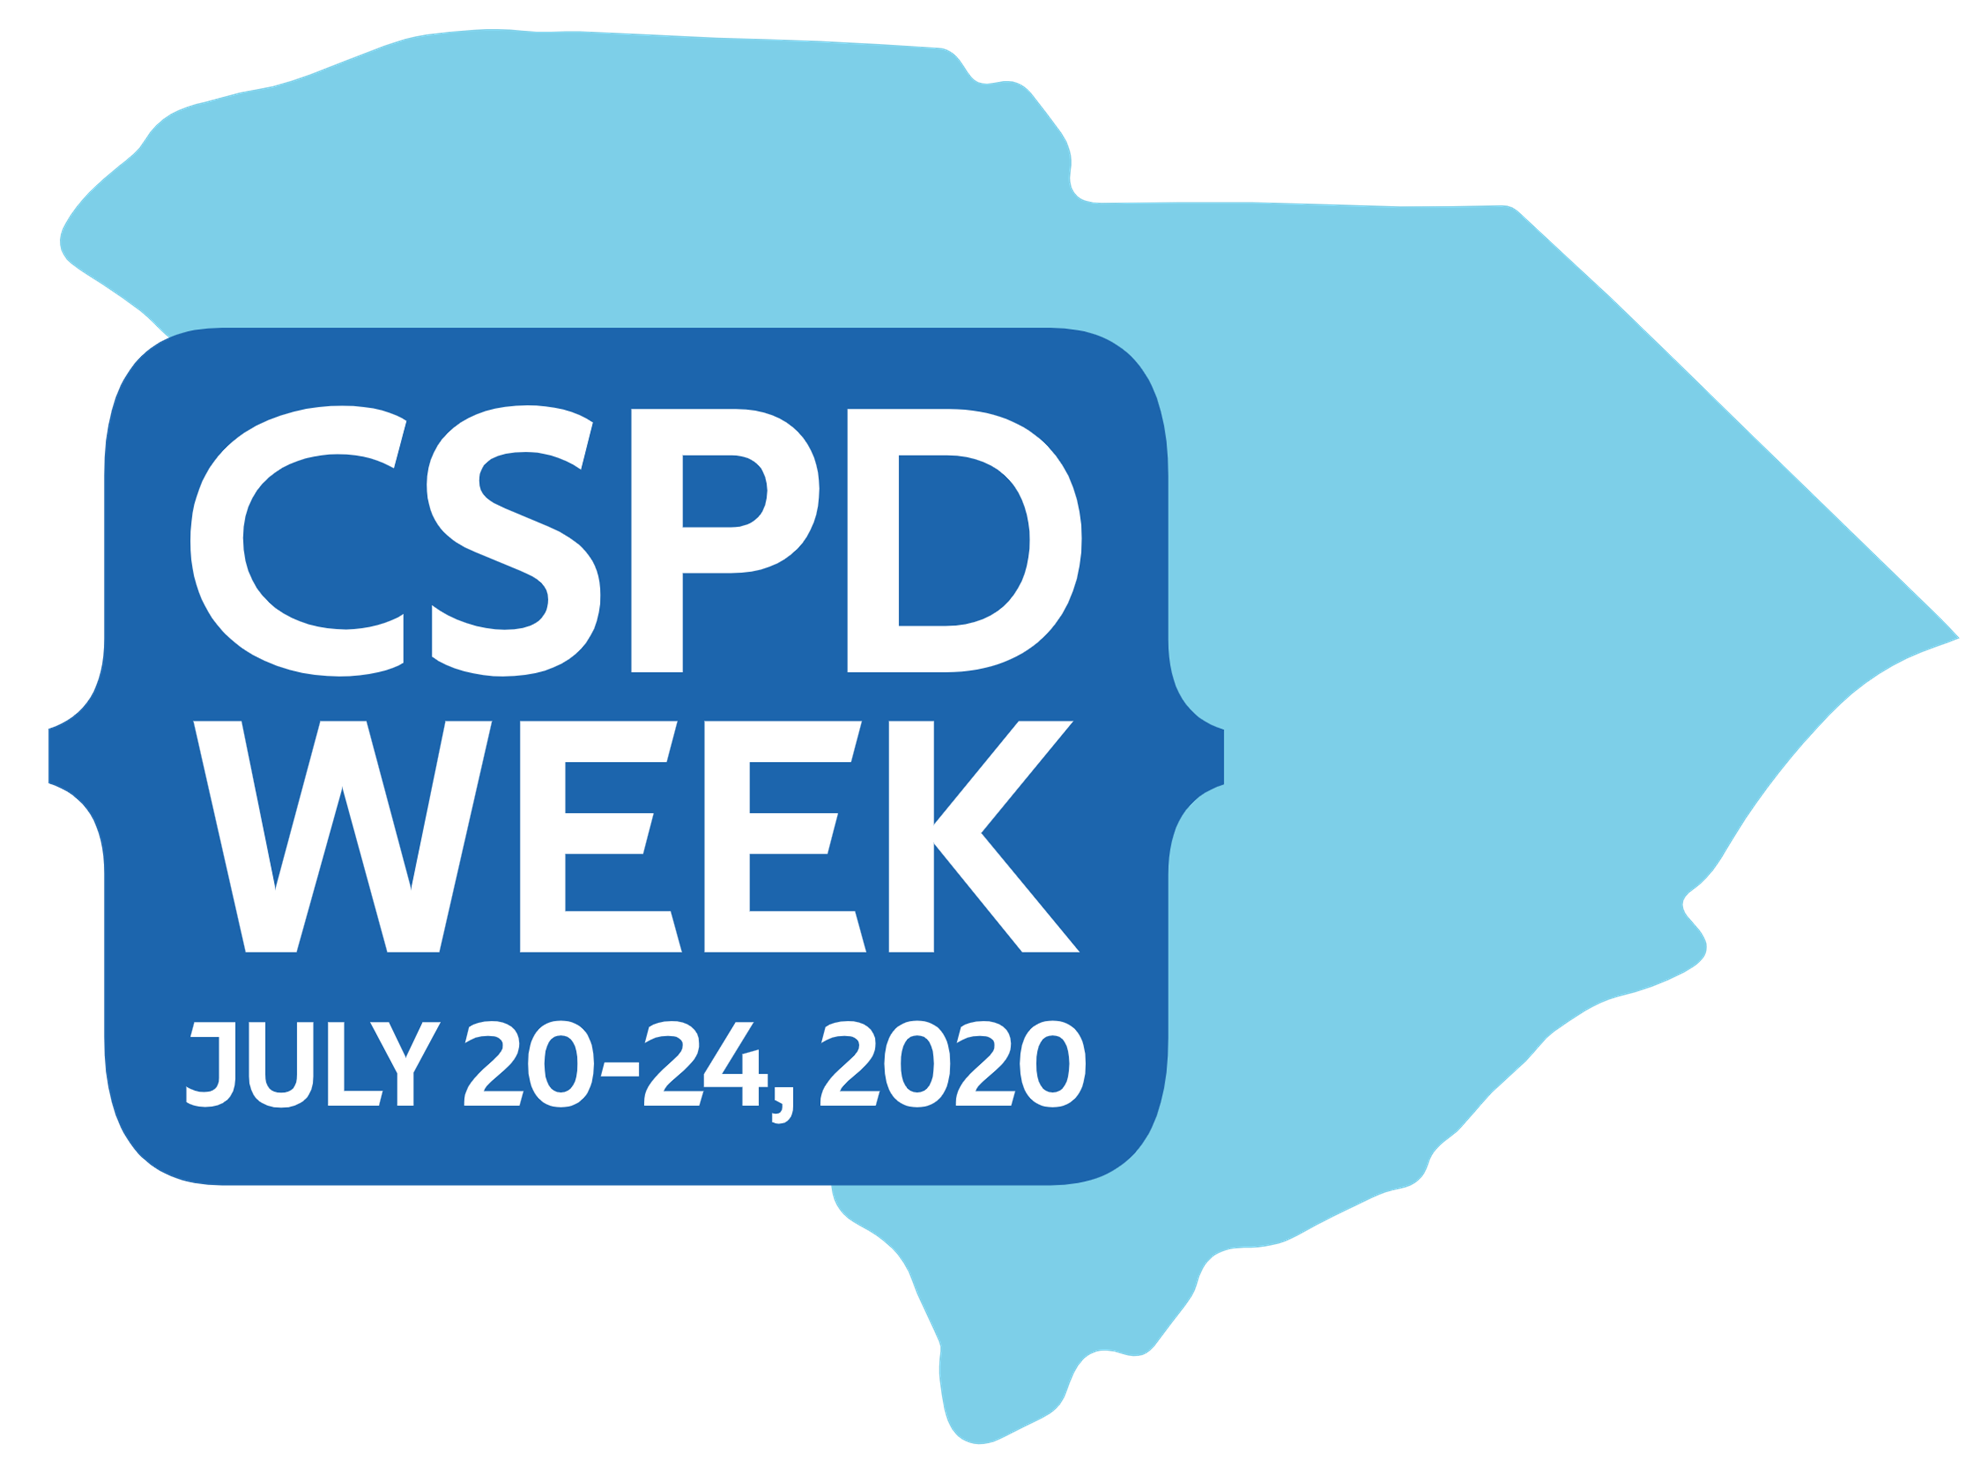 CSPDWeek - July 20-24, 2020 (CSTA South Carolina)